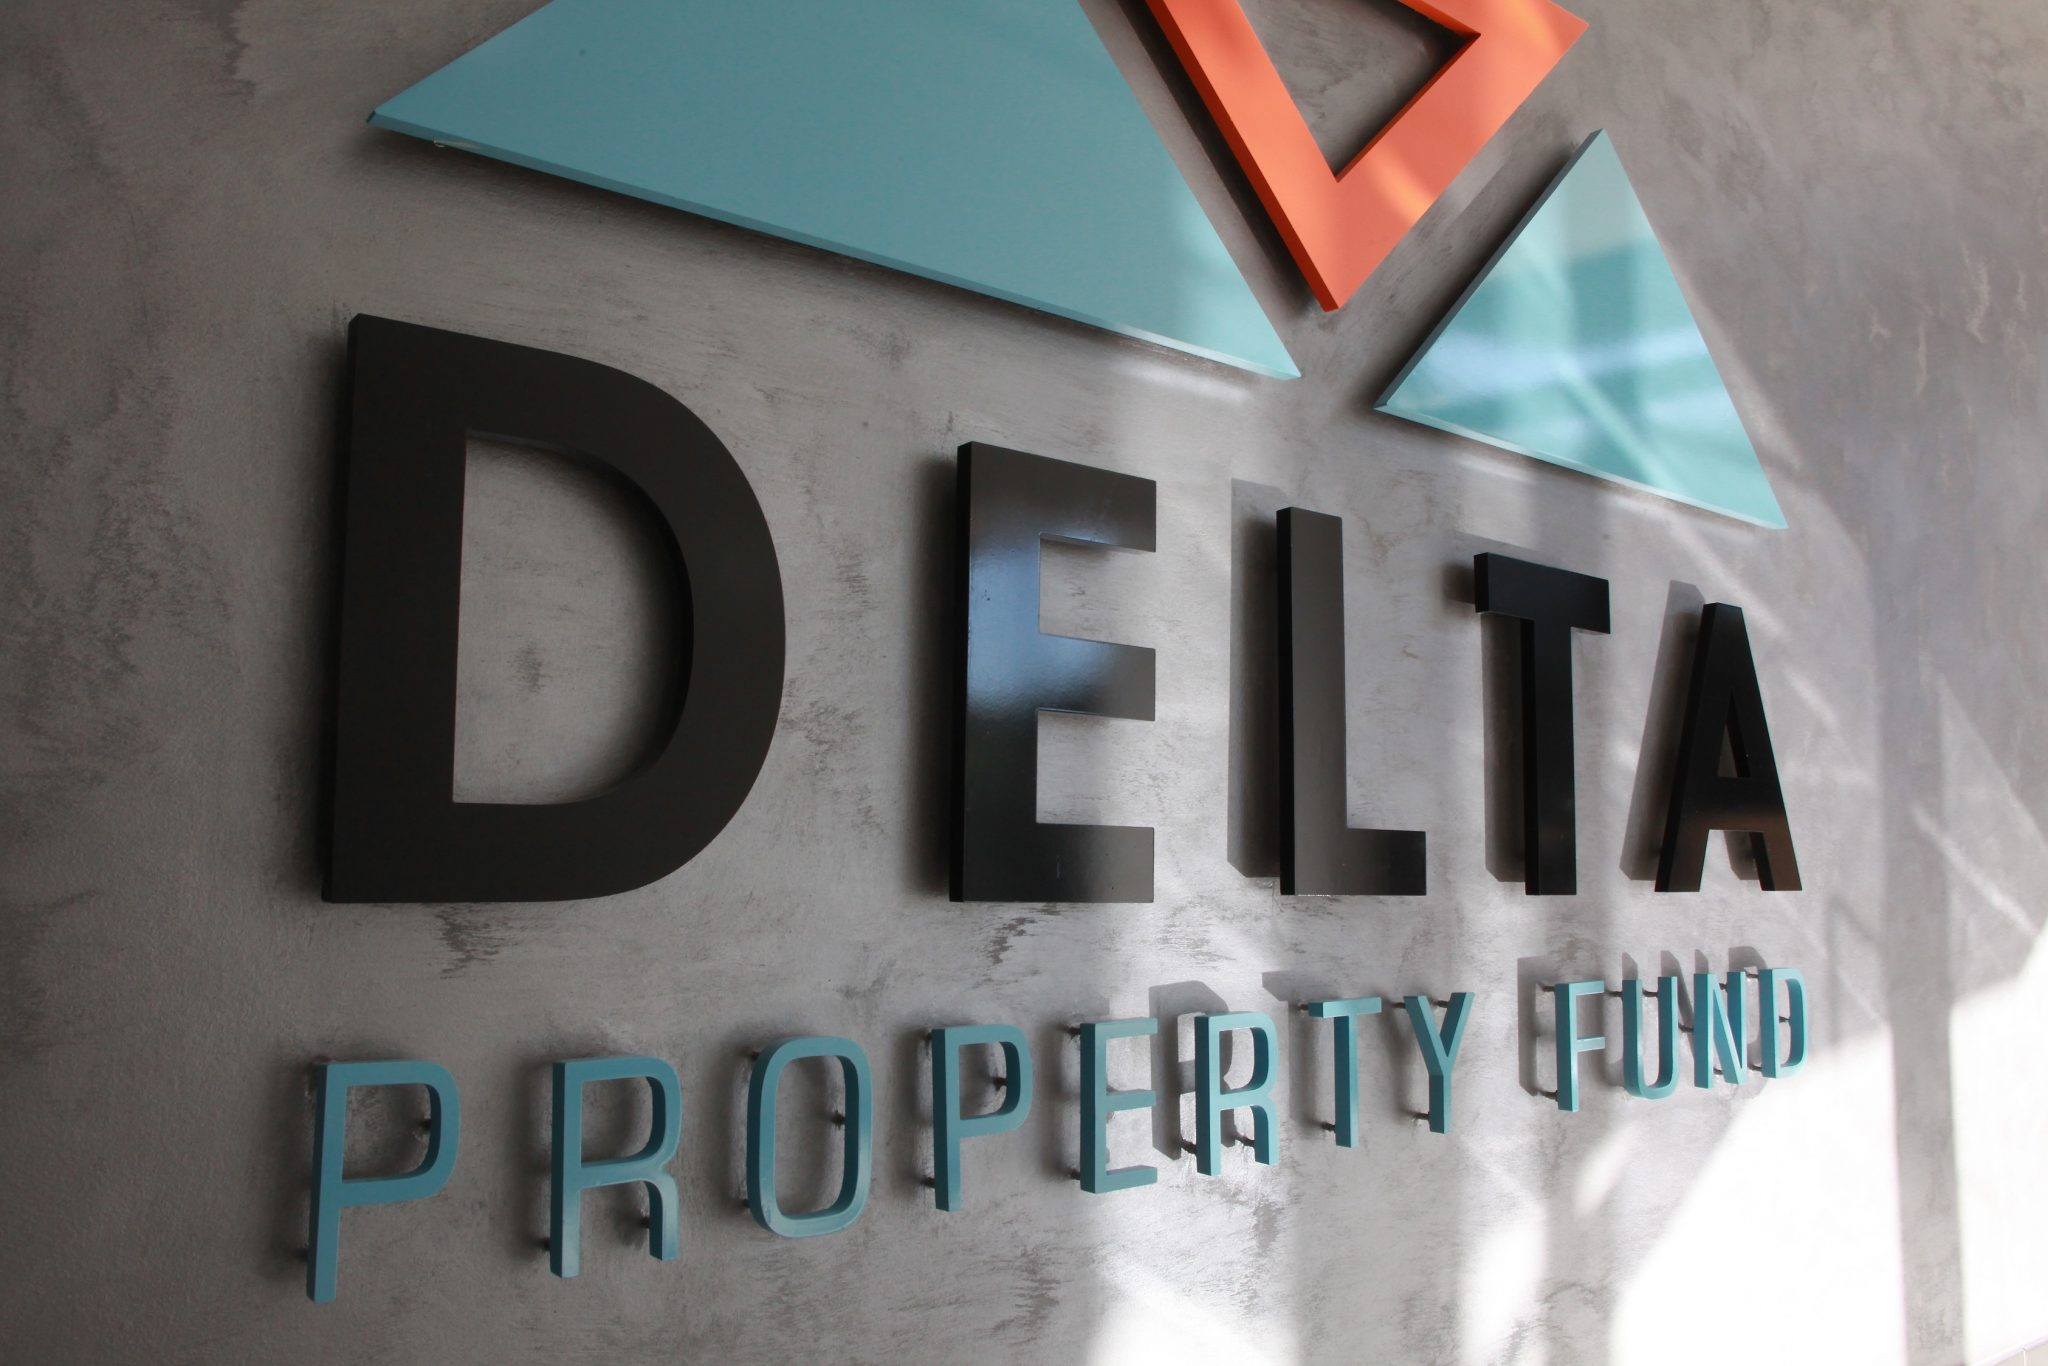 Delta Property Fund's shares remain suspended on the JSE. Image: Supplied